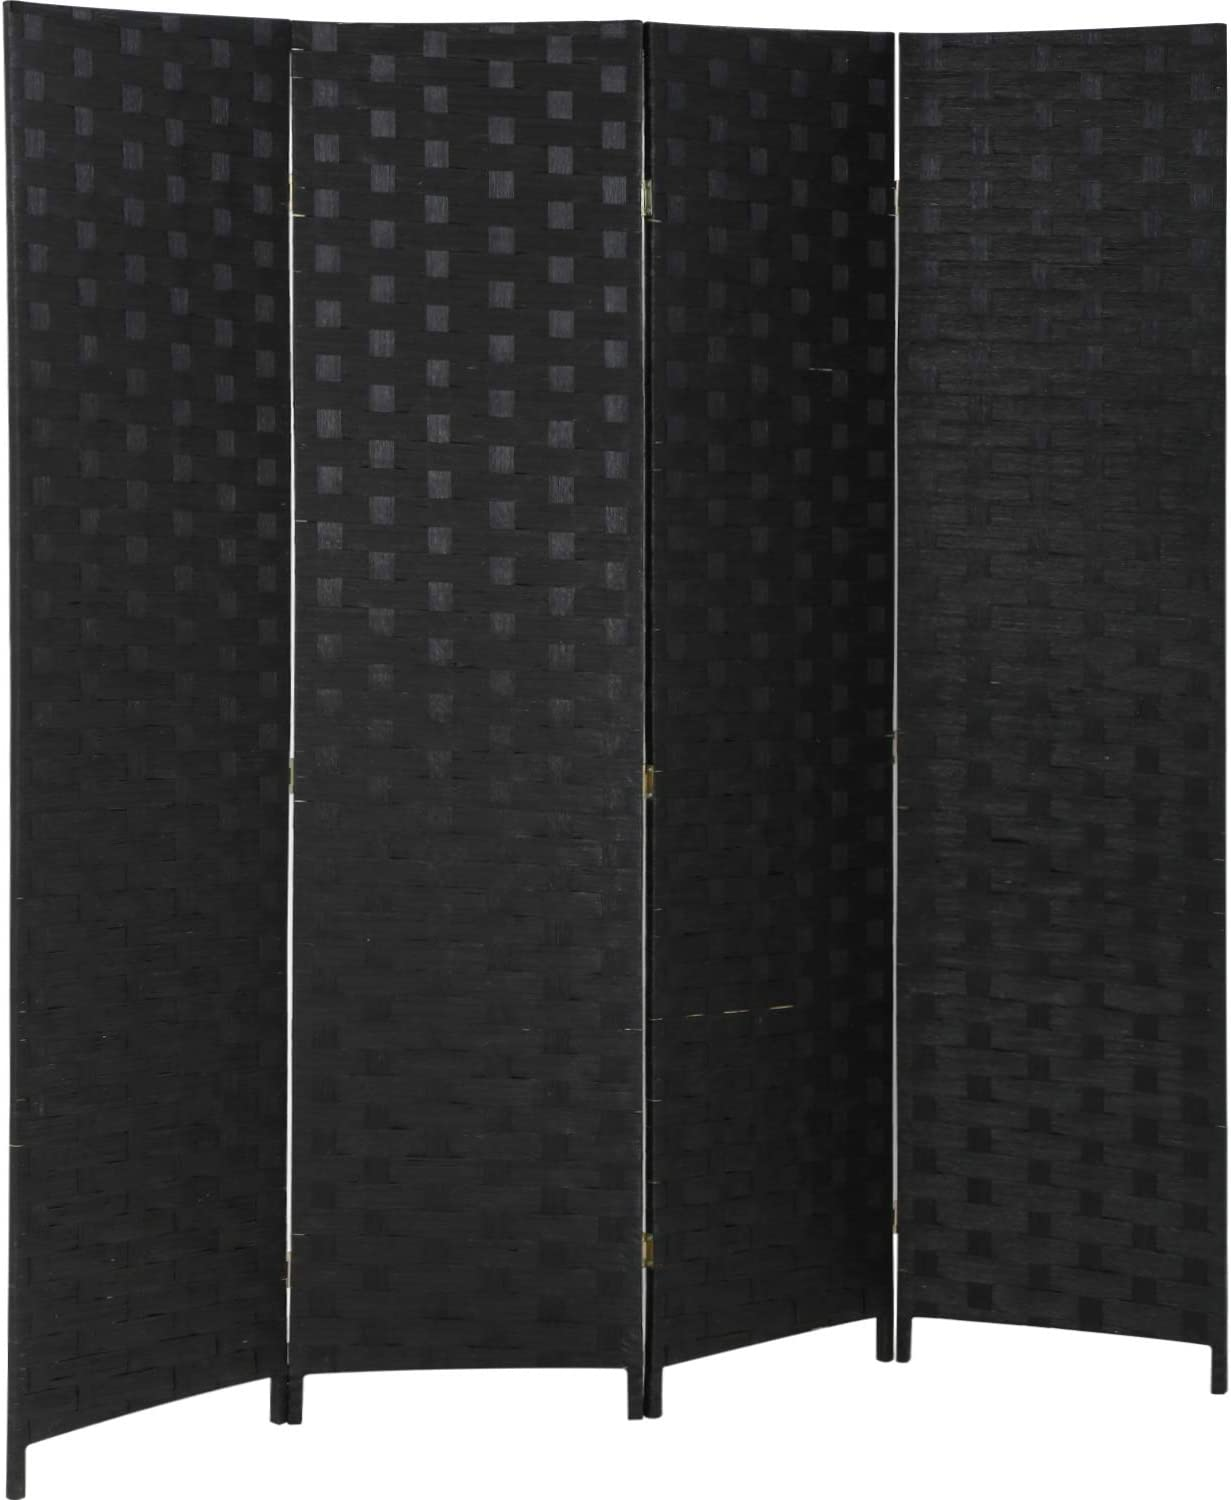 FDW Room Divider 6FT Wall Divider Wood Screen 4 Panels Wood Mesh Hand-Woven Design Room Screen Divider Indoor Folding Portable Partition Screen,Black: Furniture & Decor